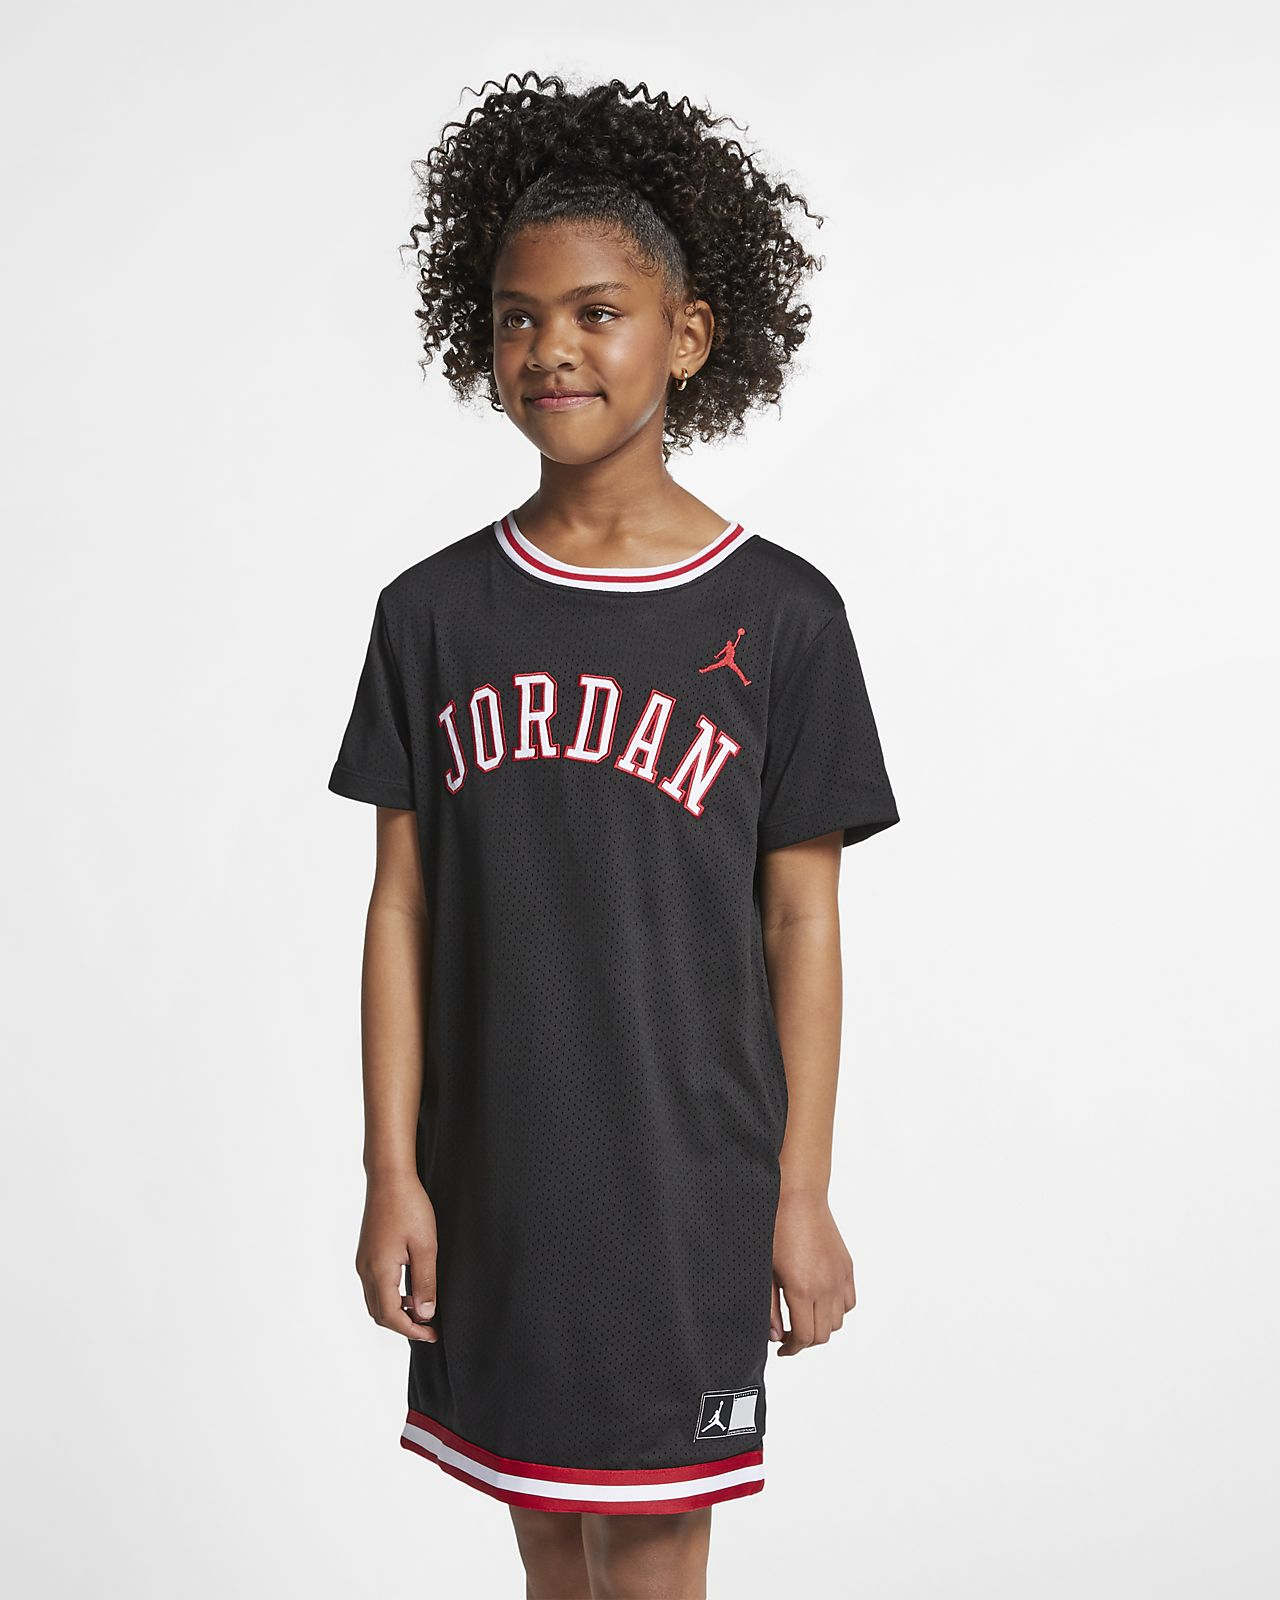 Jordan Older Kids' (Girls') Dress